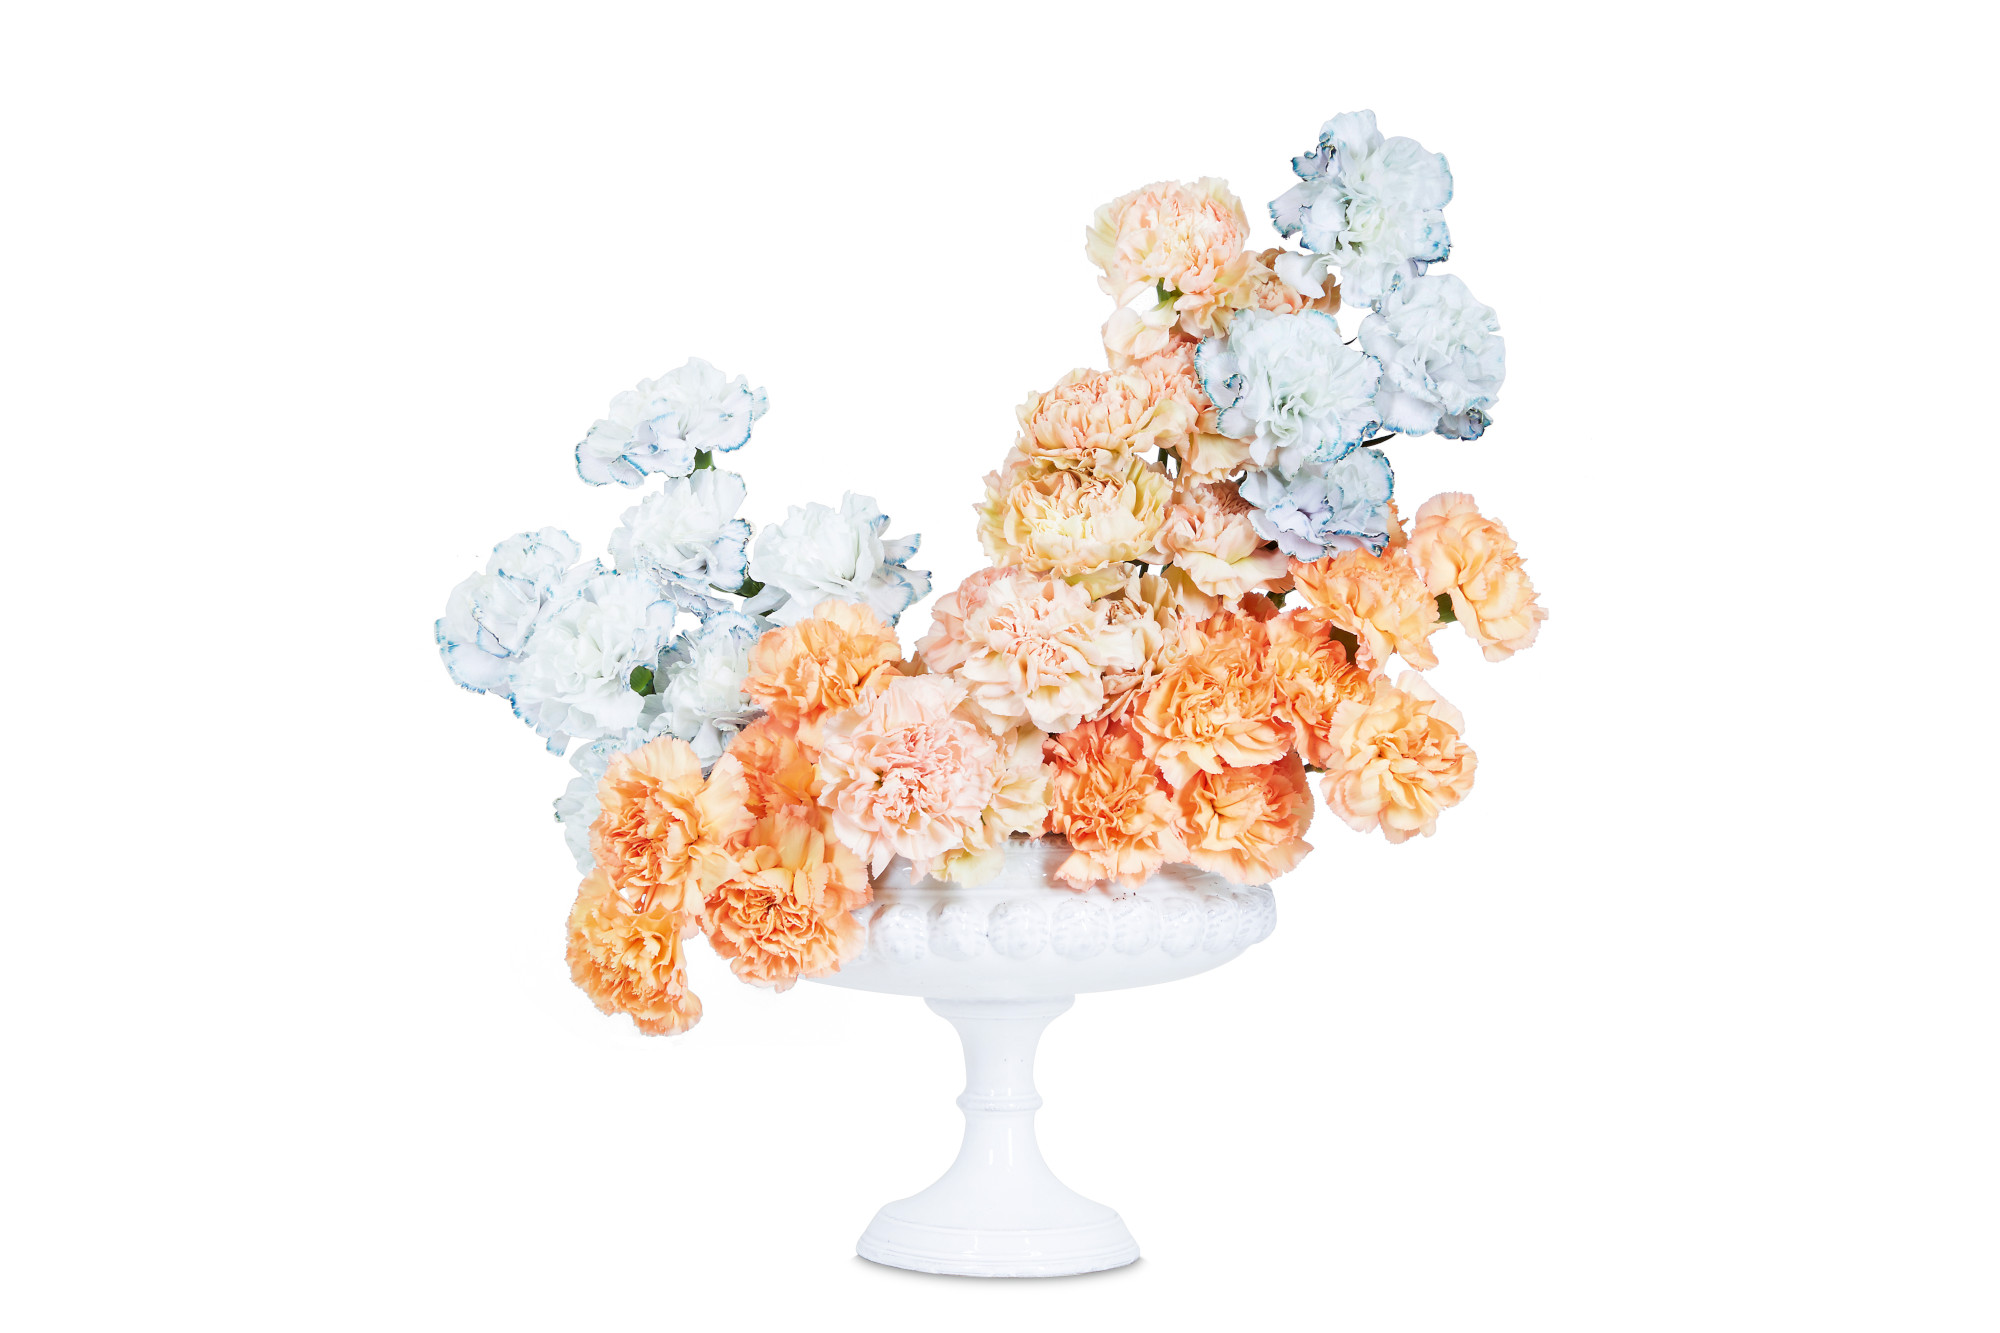 A complementary Peach and pale blue Carnation arrangement from Flower Color Theory. 'When creating a composition with only one type of flower, focus on color variation and the desired shape of the arrangement,' Darroch and Michael Putnam advise.